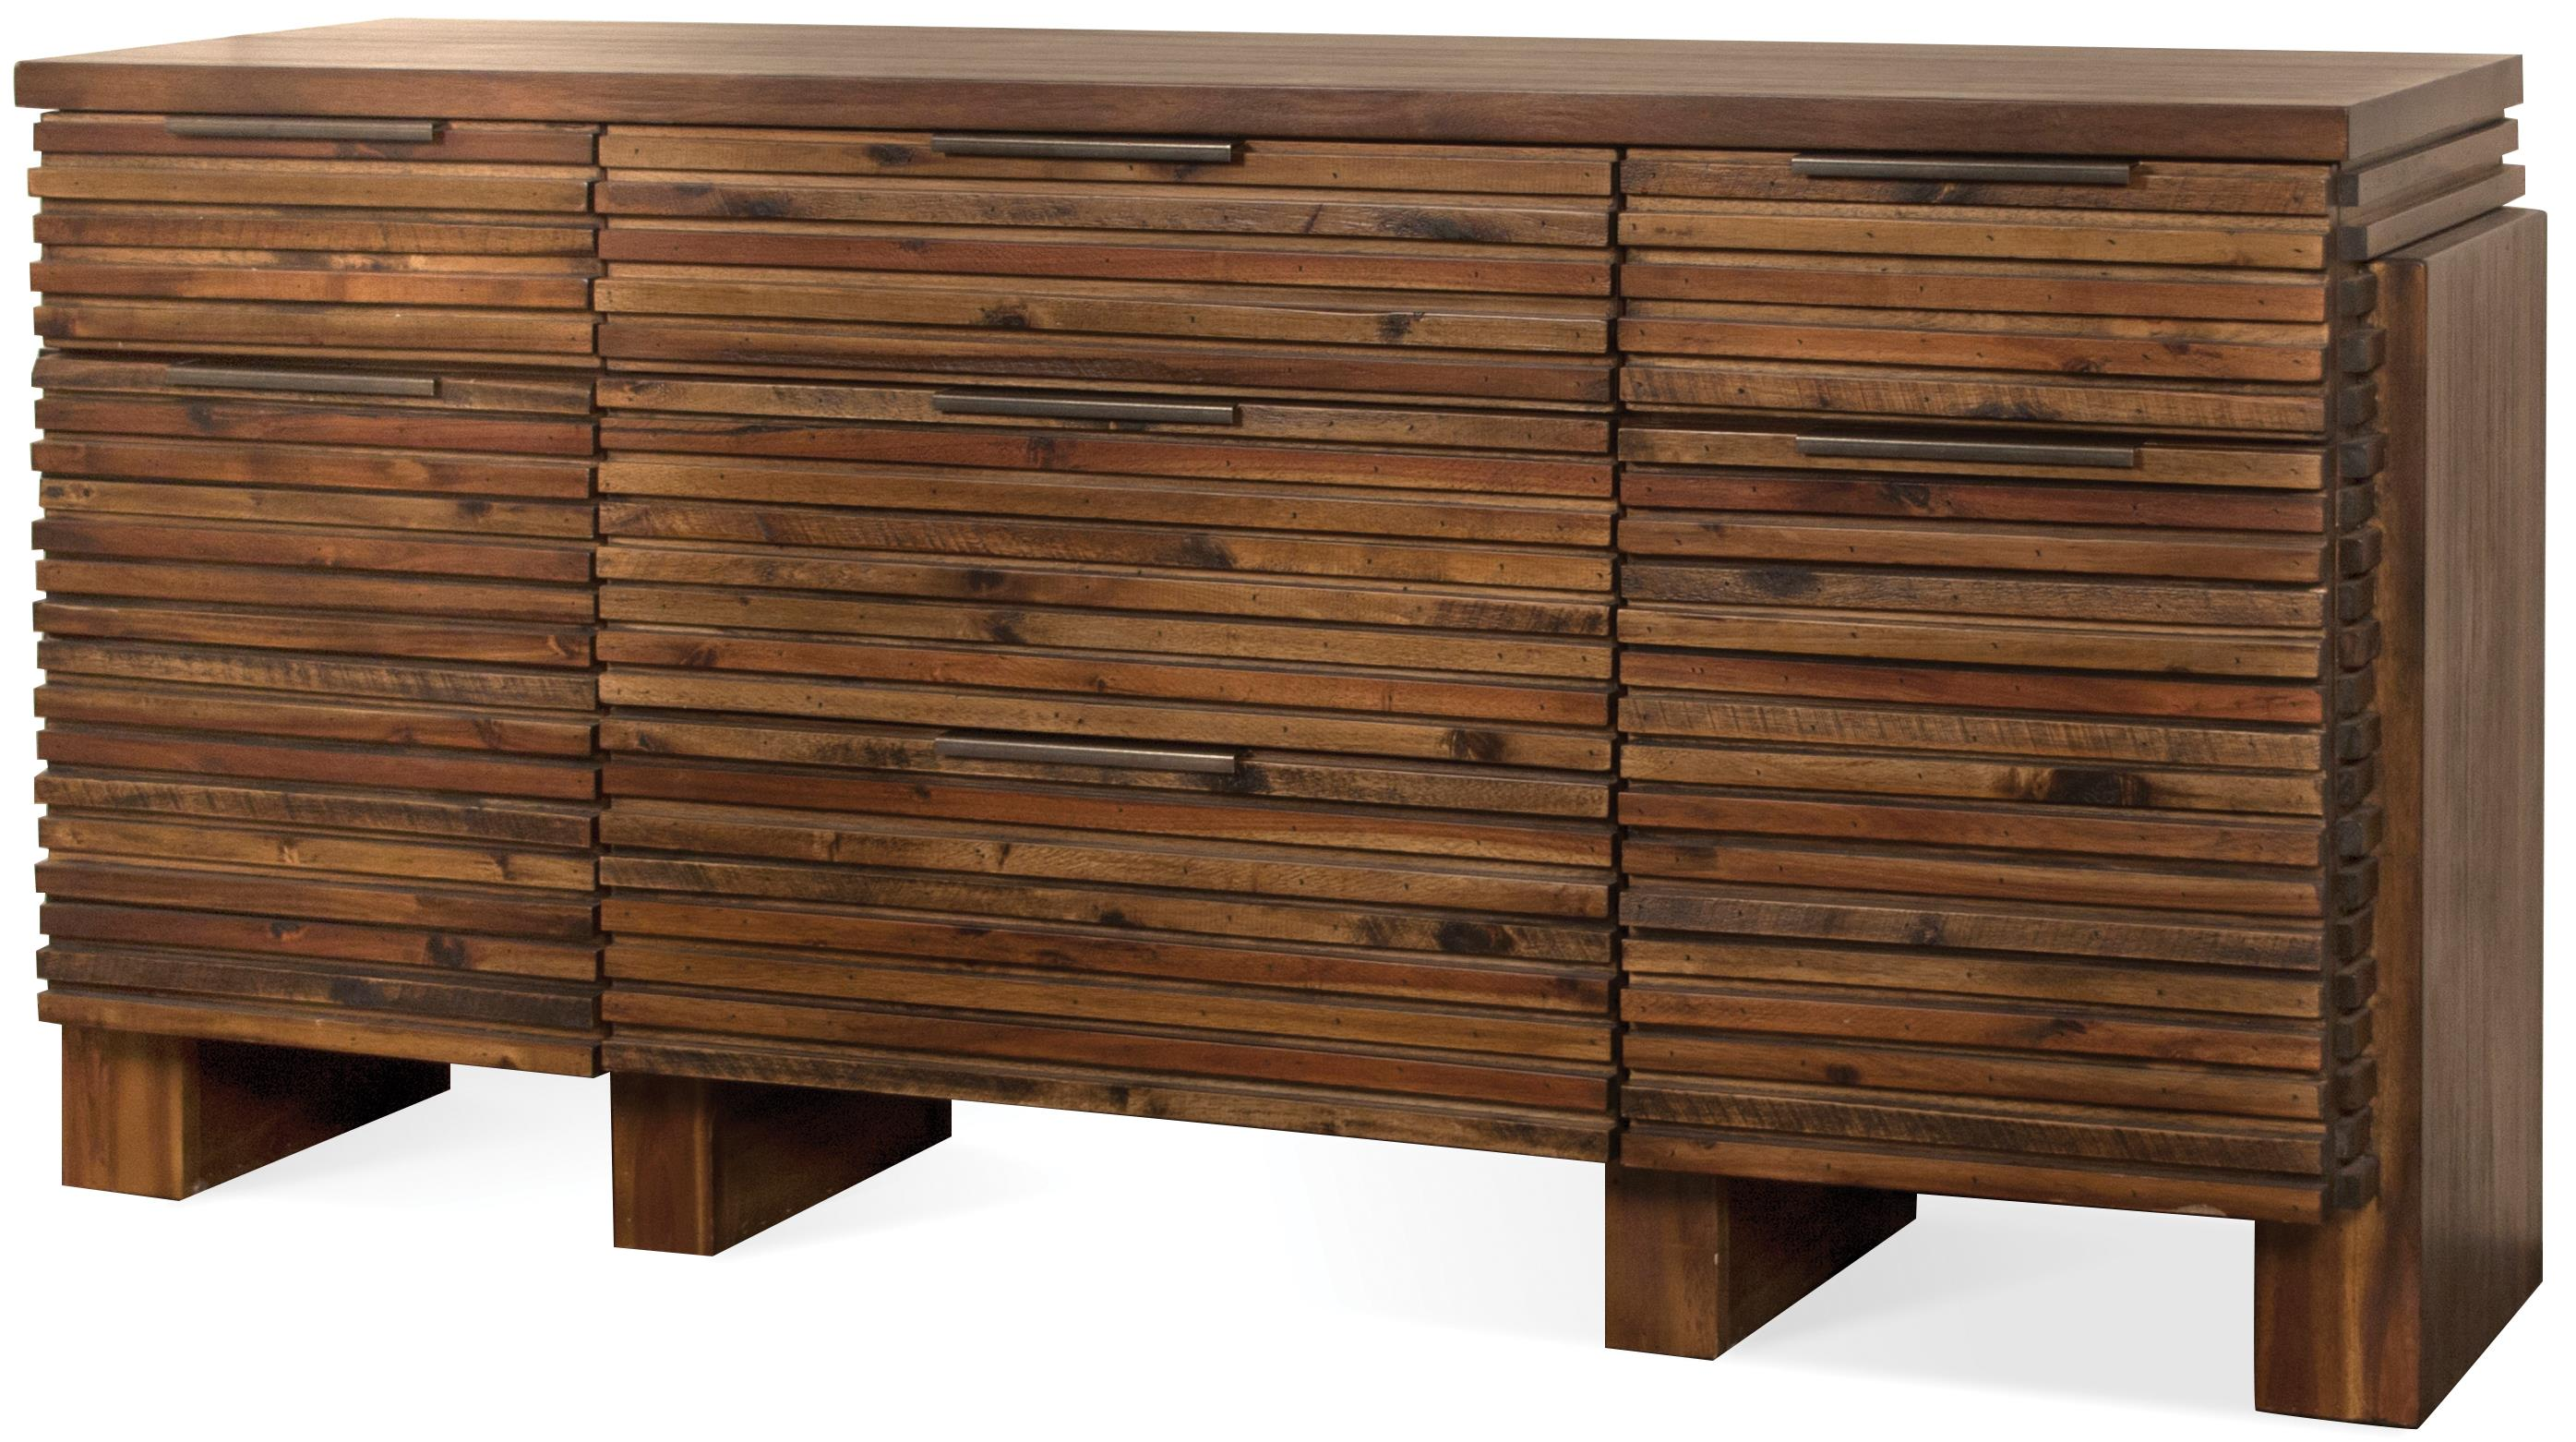 Riverside Furniture Modern Gatherings Sideboard - Item Number: 15354